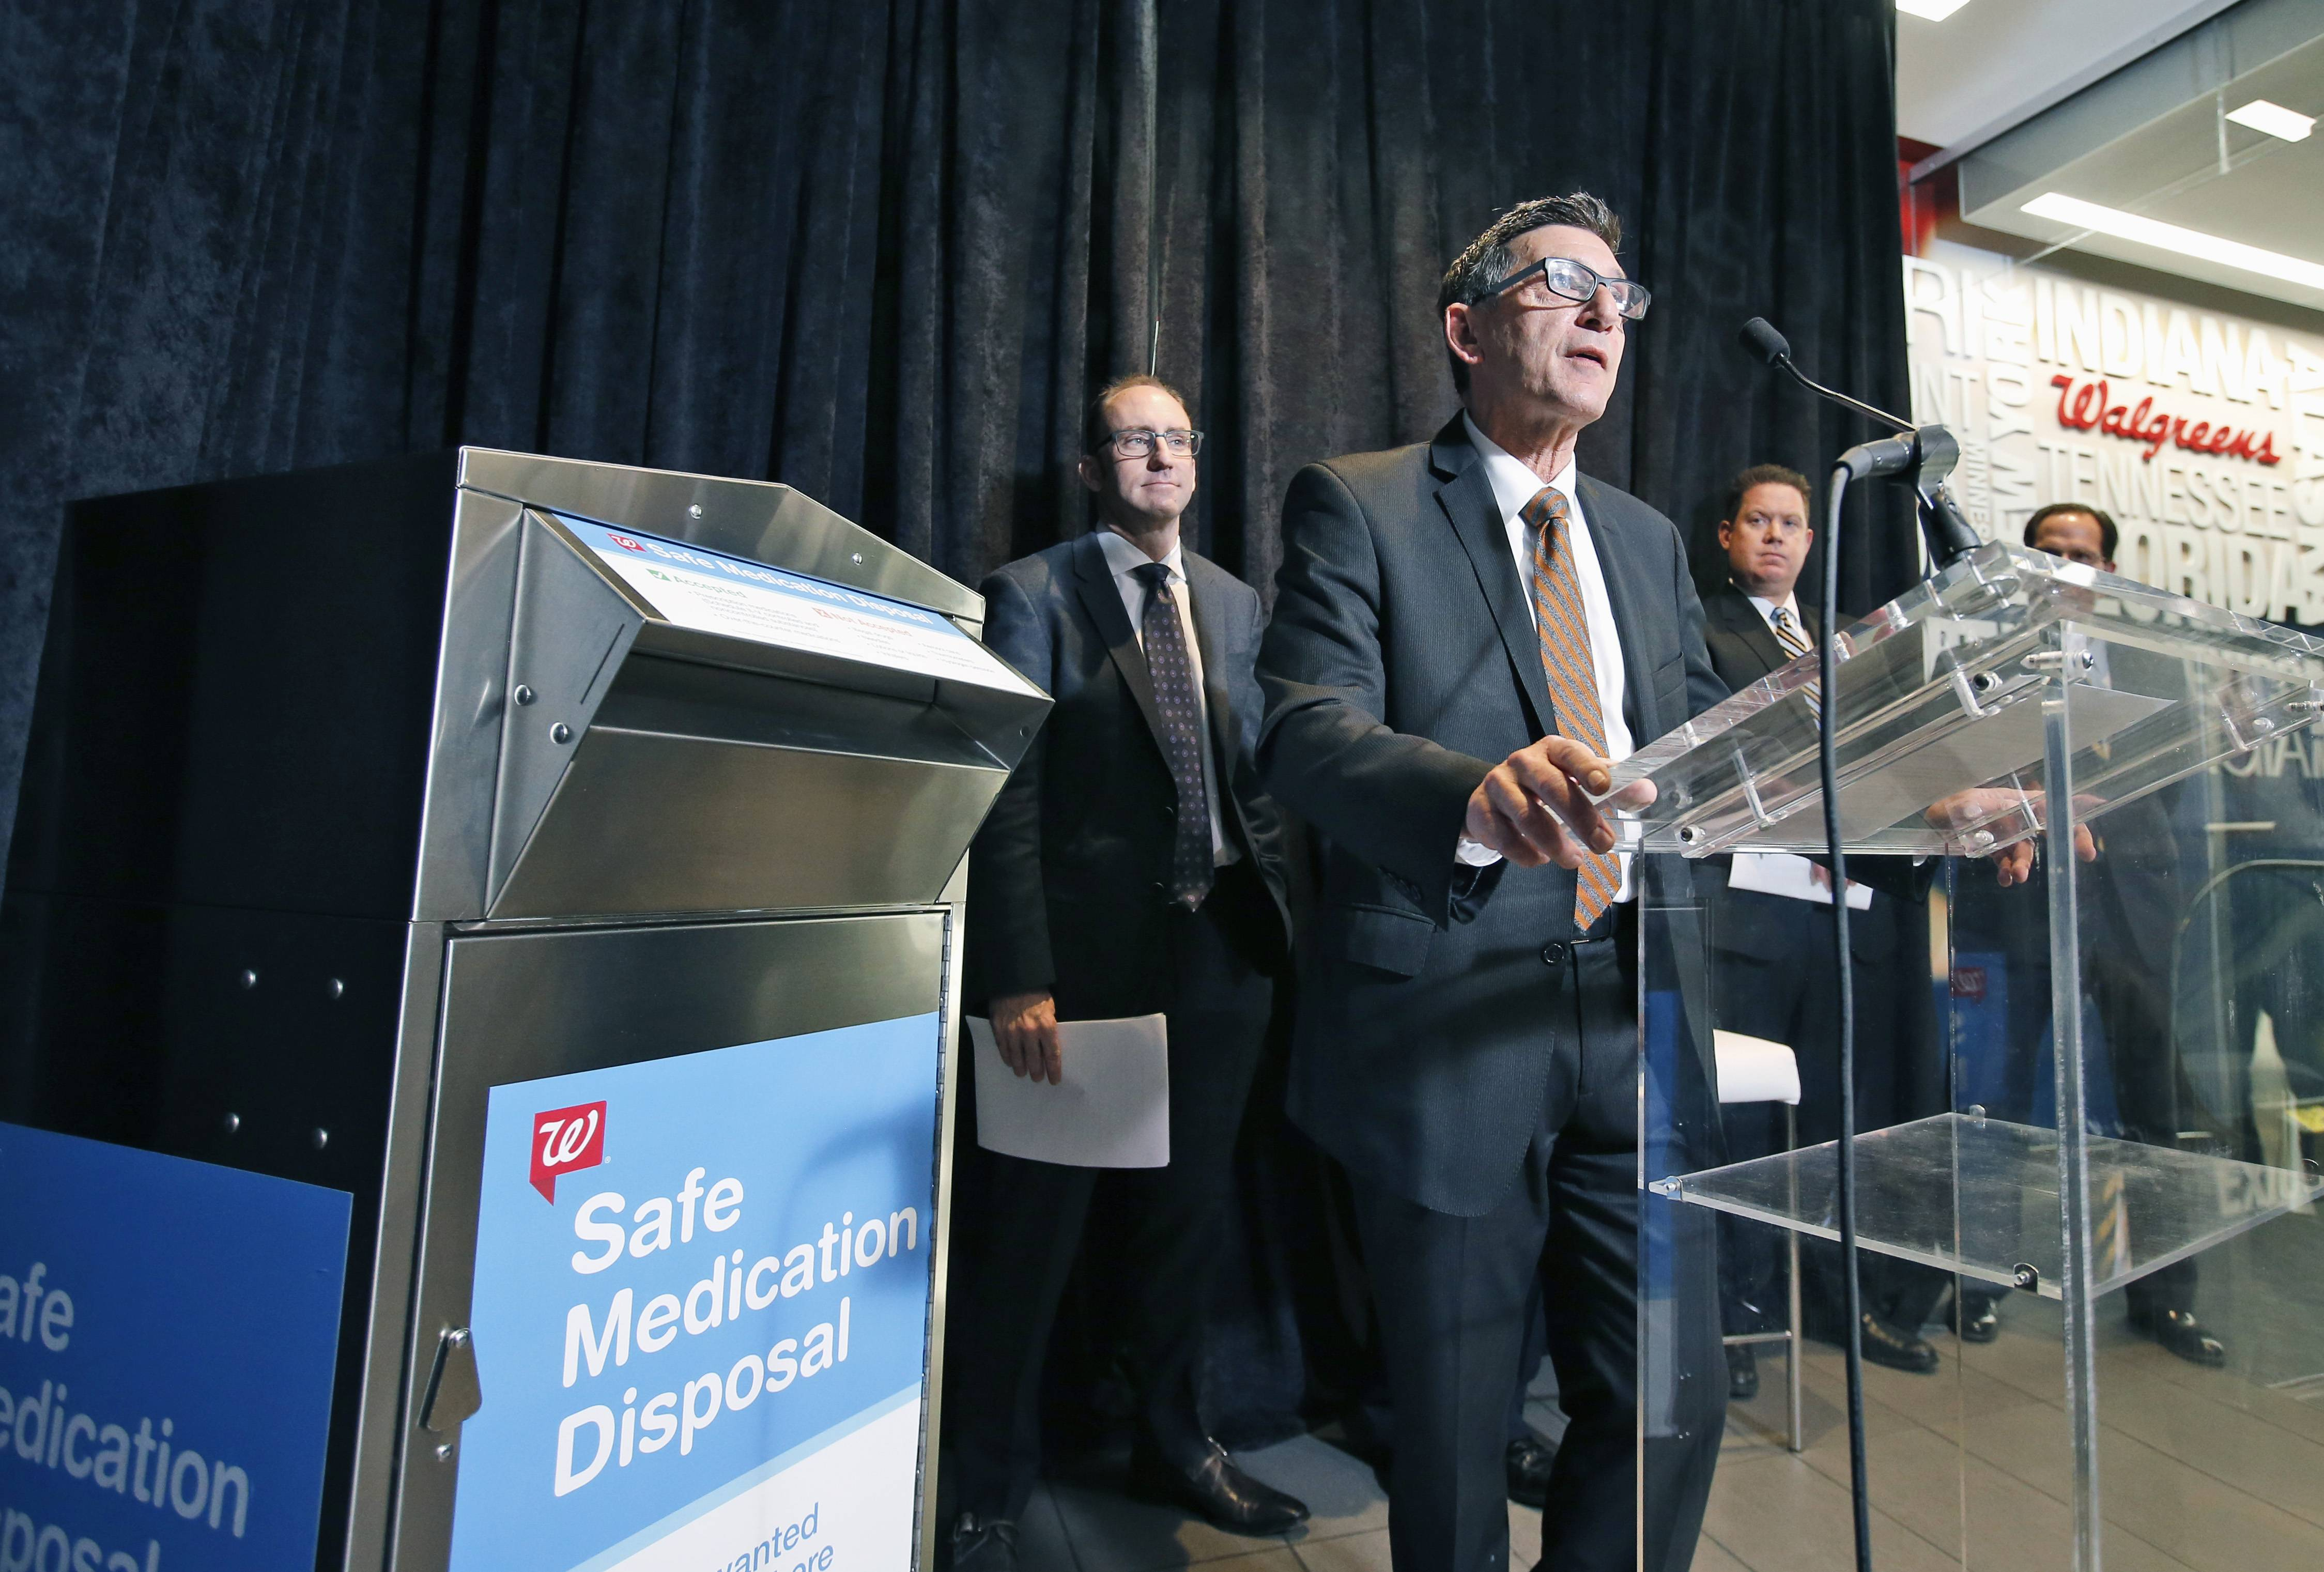 White House Drug Policy Director Michael Botticello, accompanied by Richard Ashworth, Walgreens president for pharmacy and retail operations, left, and Lake County State's Attorney Michael Nerheim speak on Capitol Hill about Walgreens' plans to make the heroin overdose antidote drug naloxone available without a prescription at pharmacies in 35 states, including Illinois.